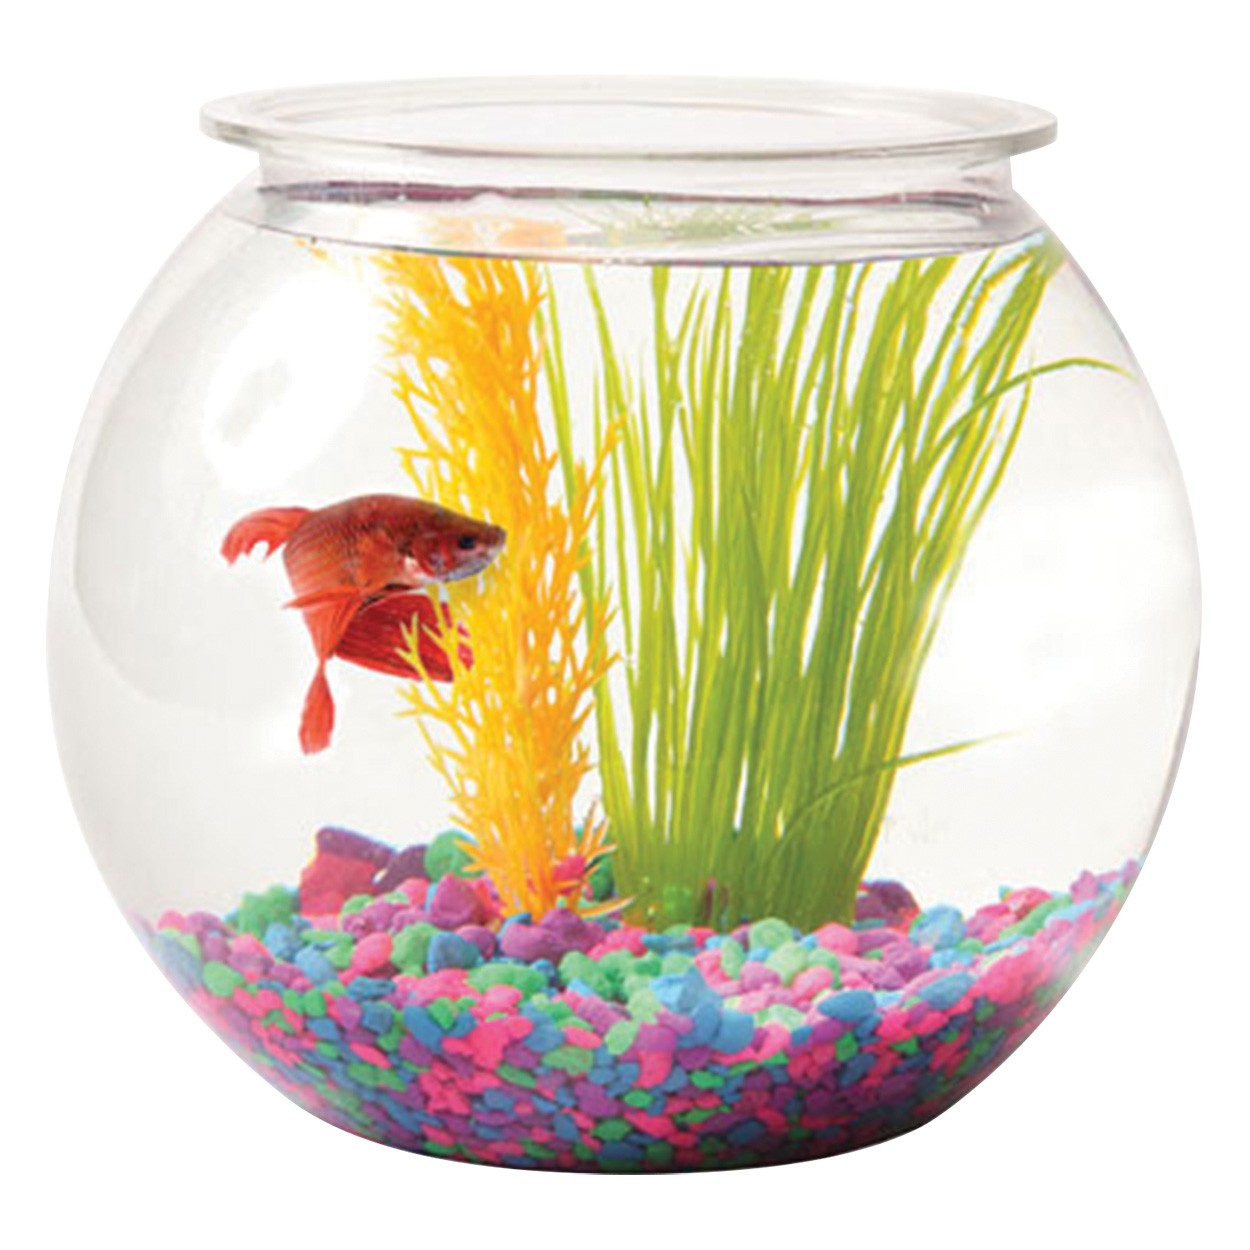 Tom aquatics plastic goldfish bowls for Caring for a betta fish in a bowl